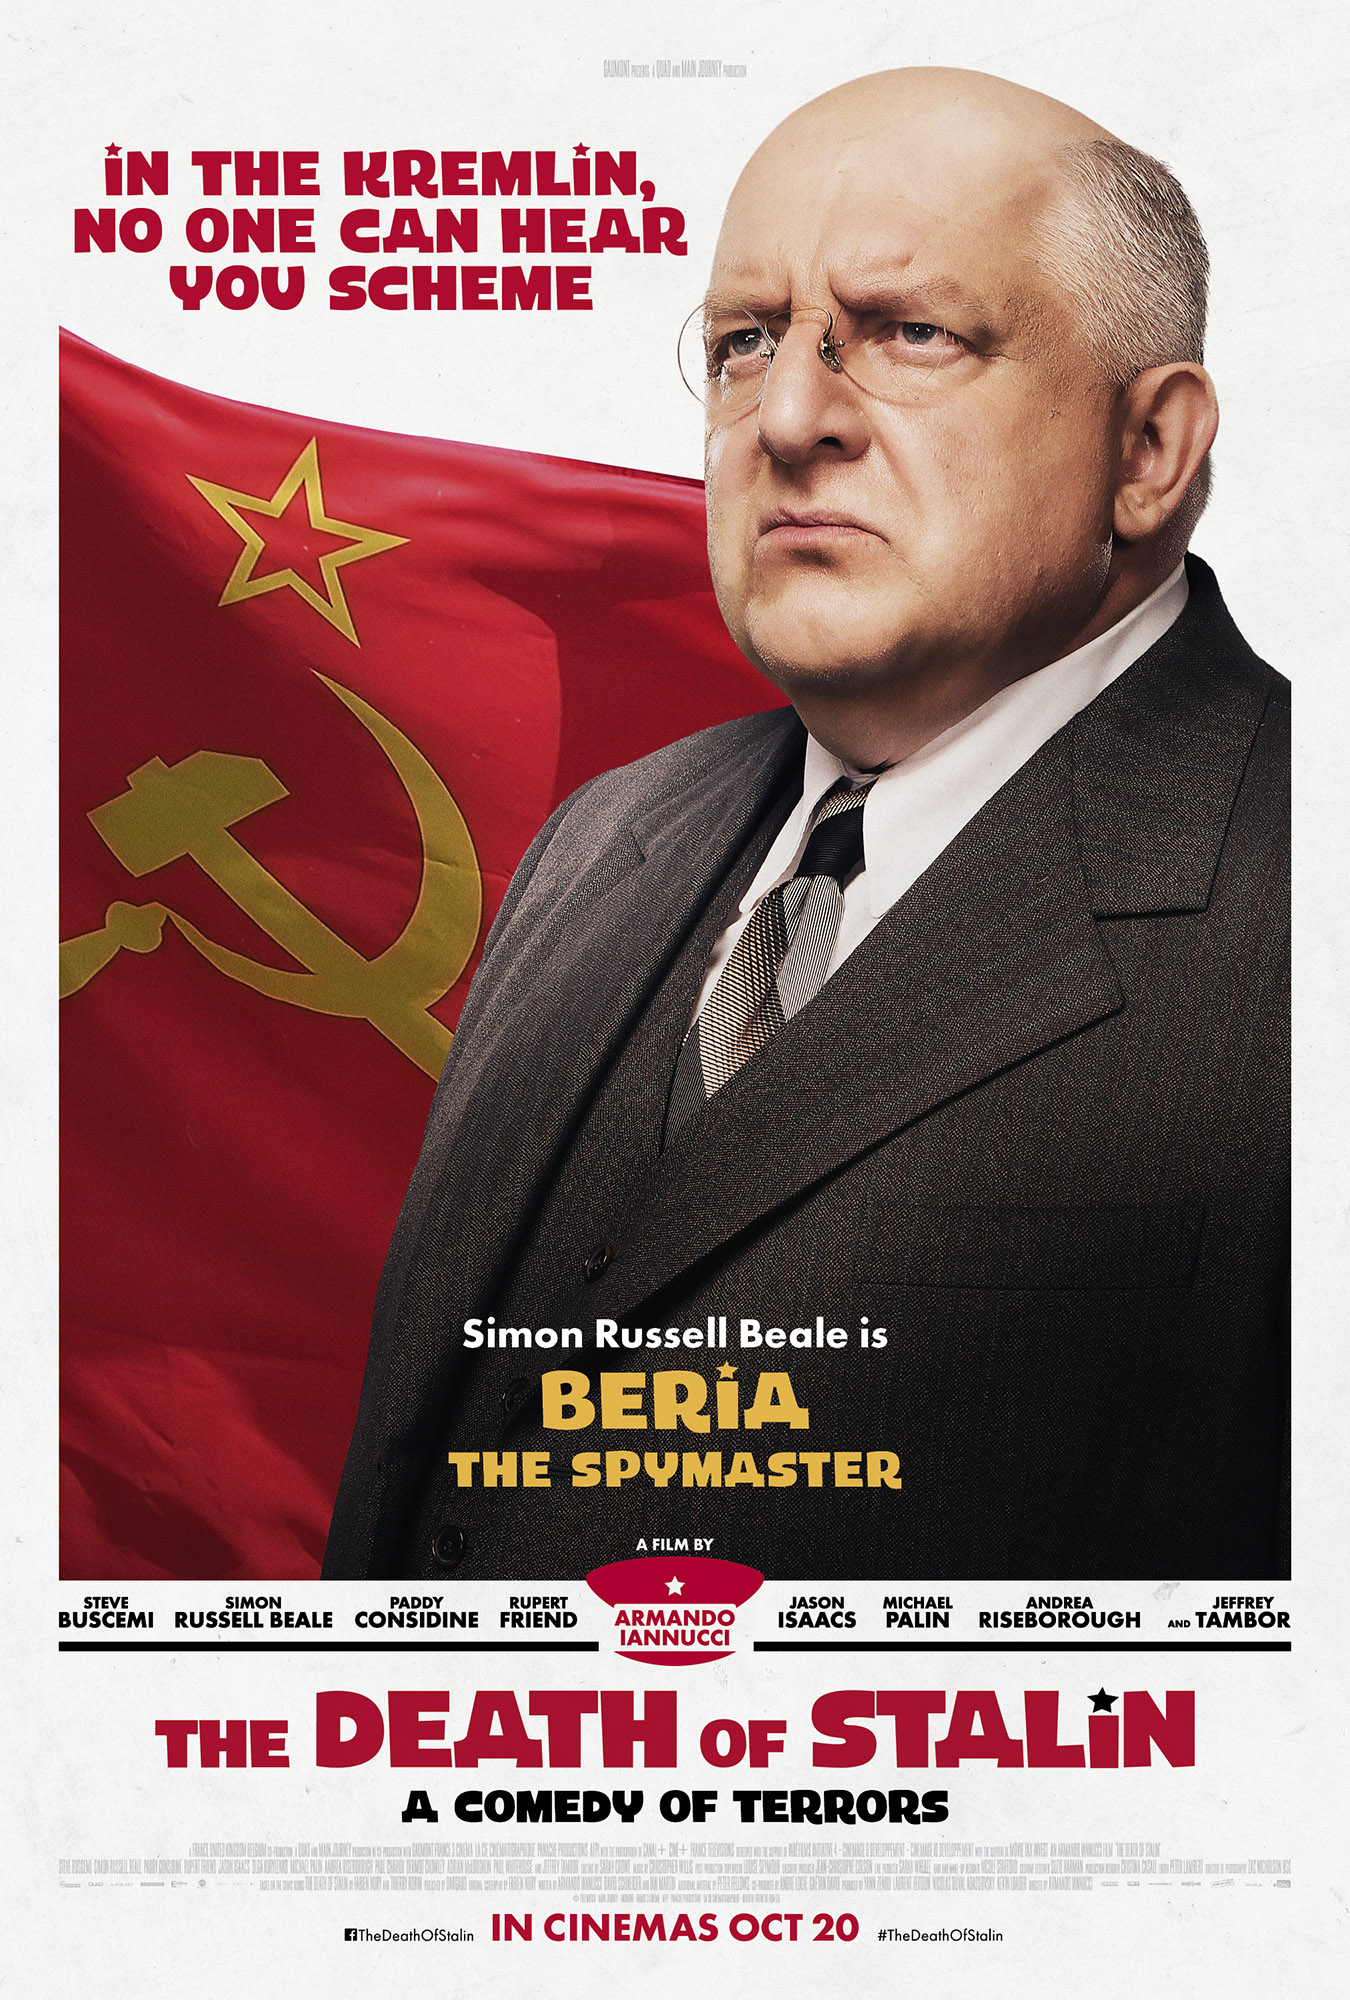 The Death of Stalin character poster Beria